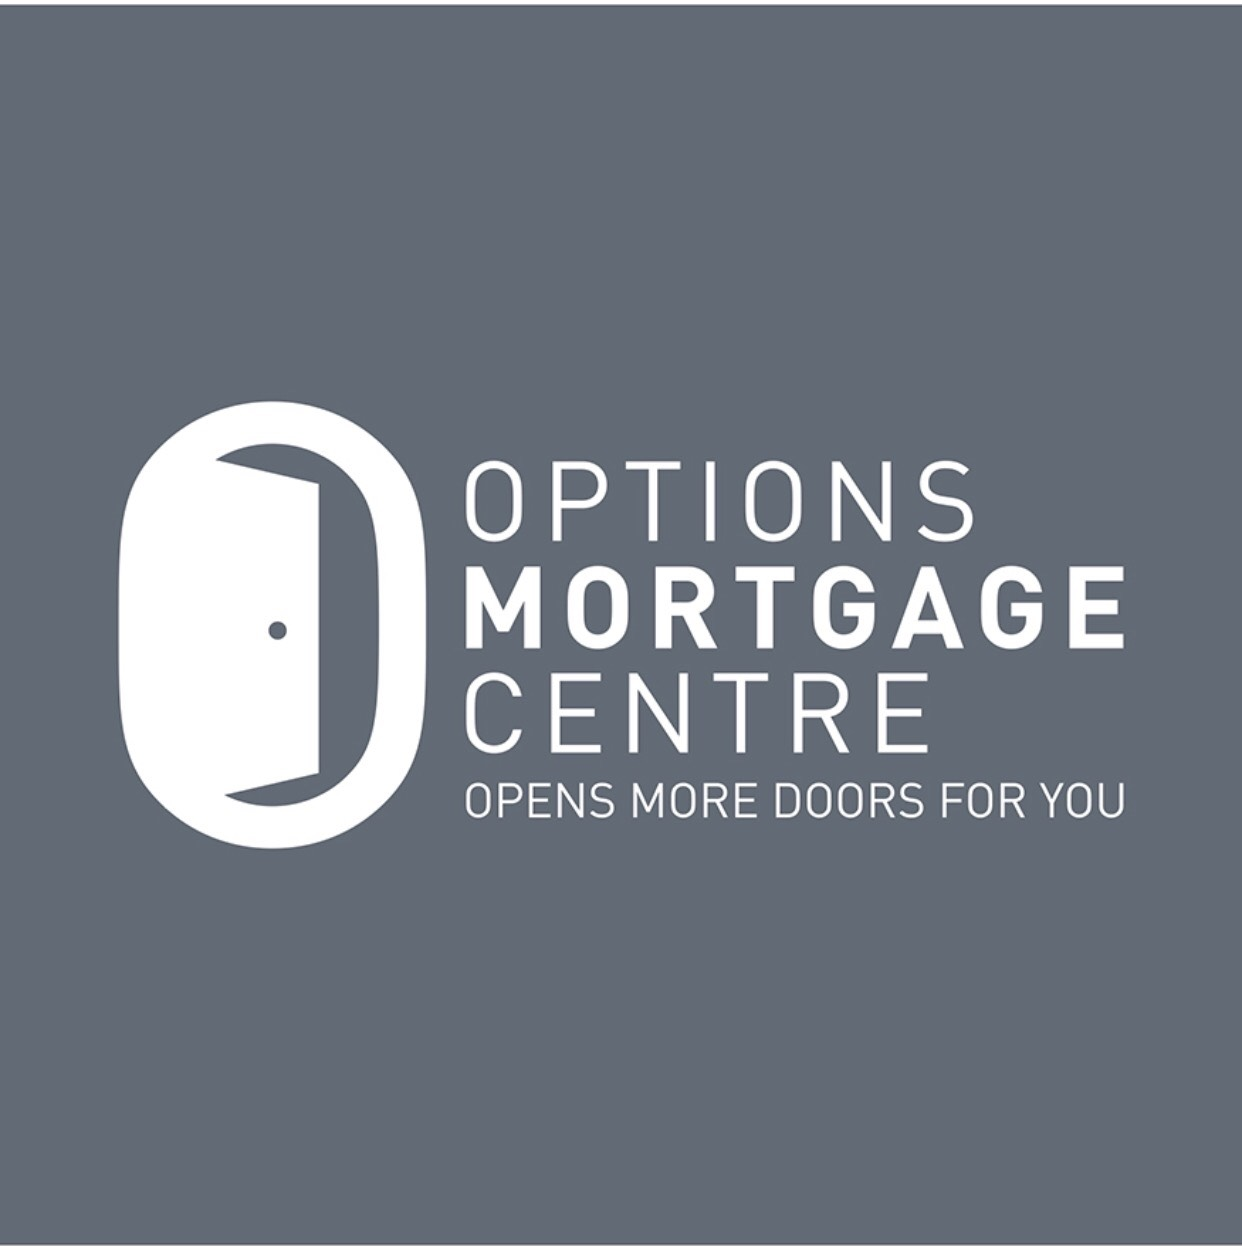 Options Mortgage Centre